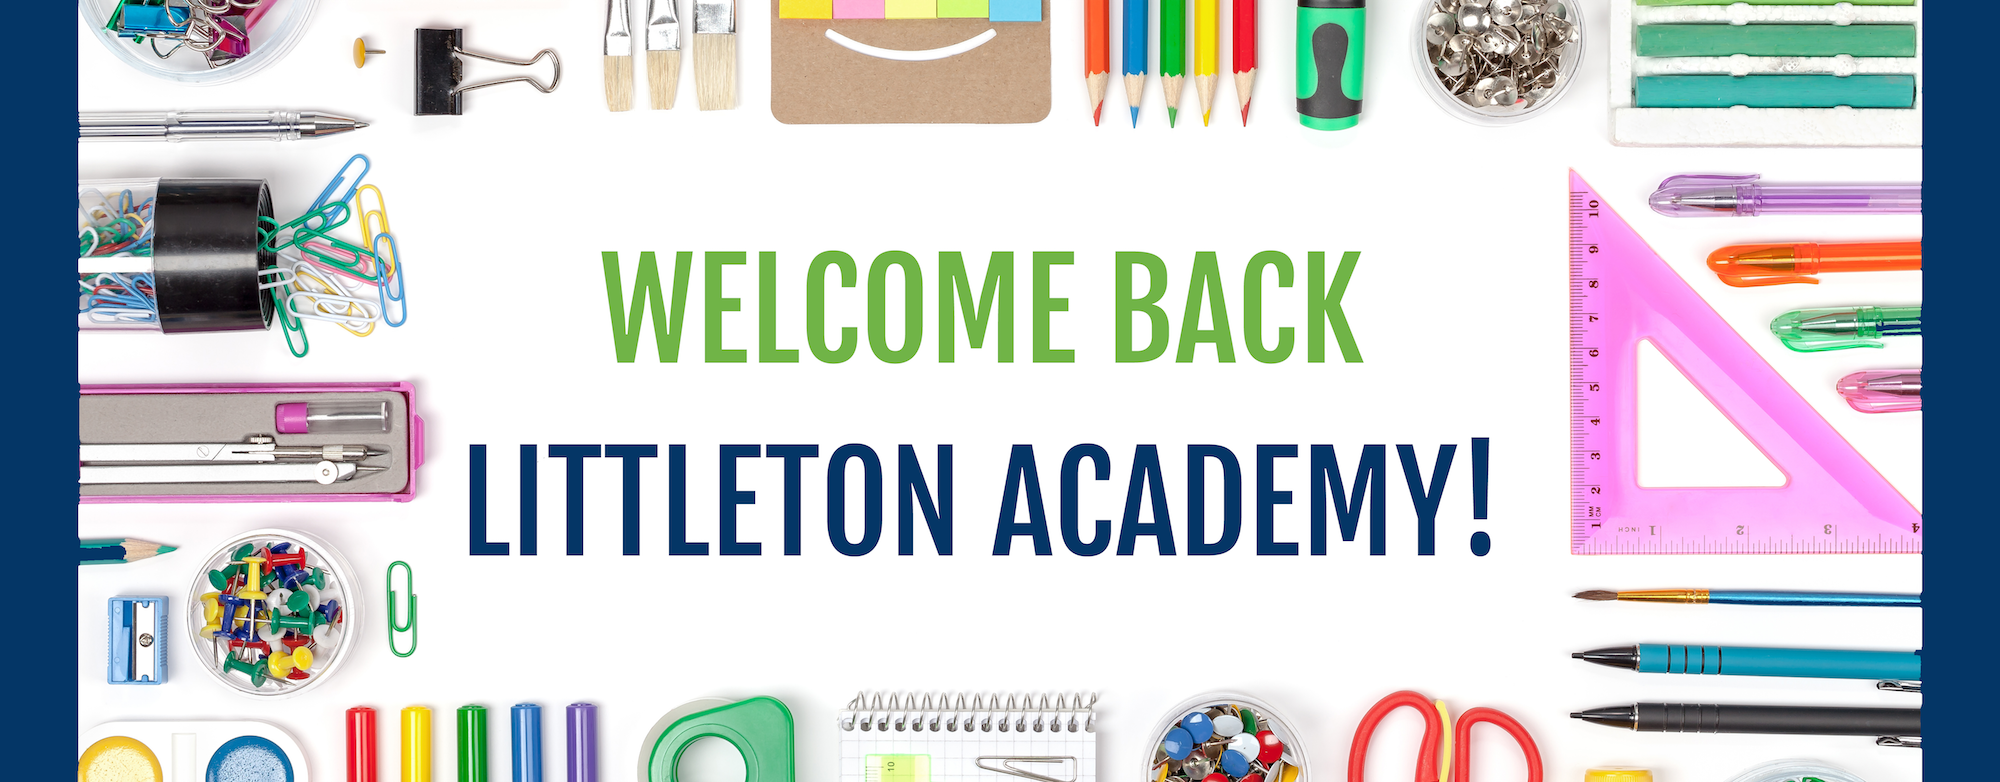 Welcome Back Littleton Academy